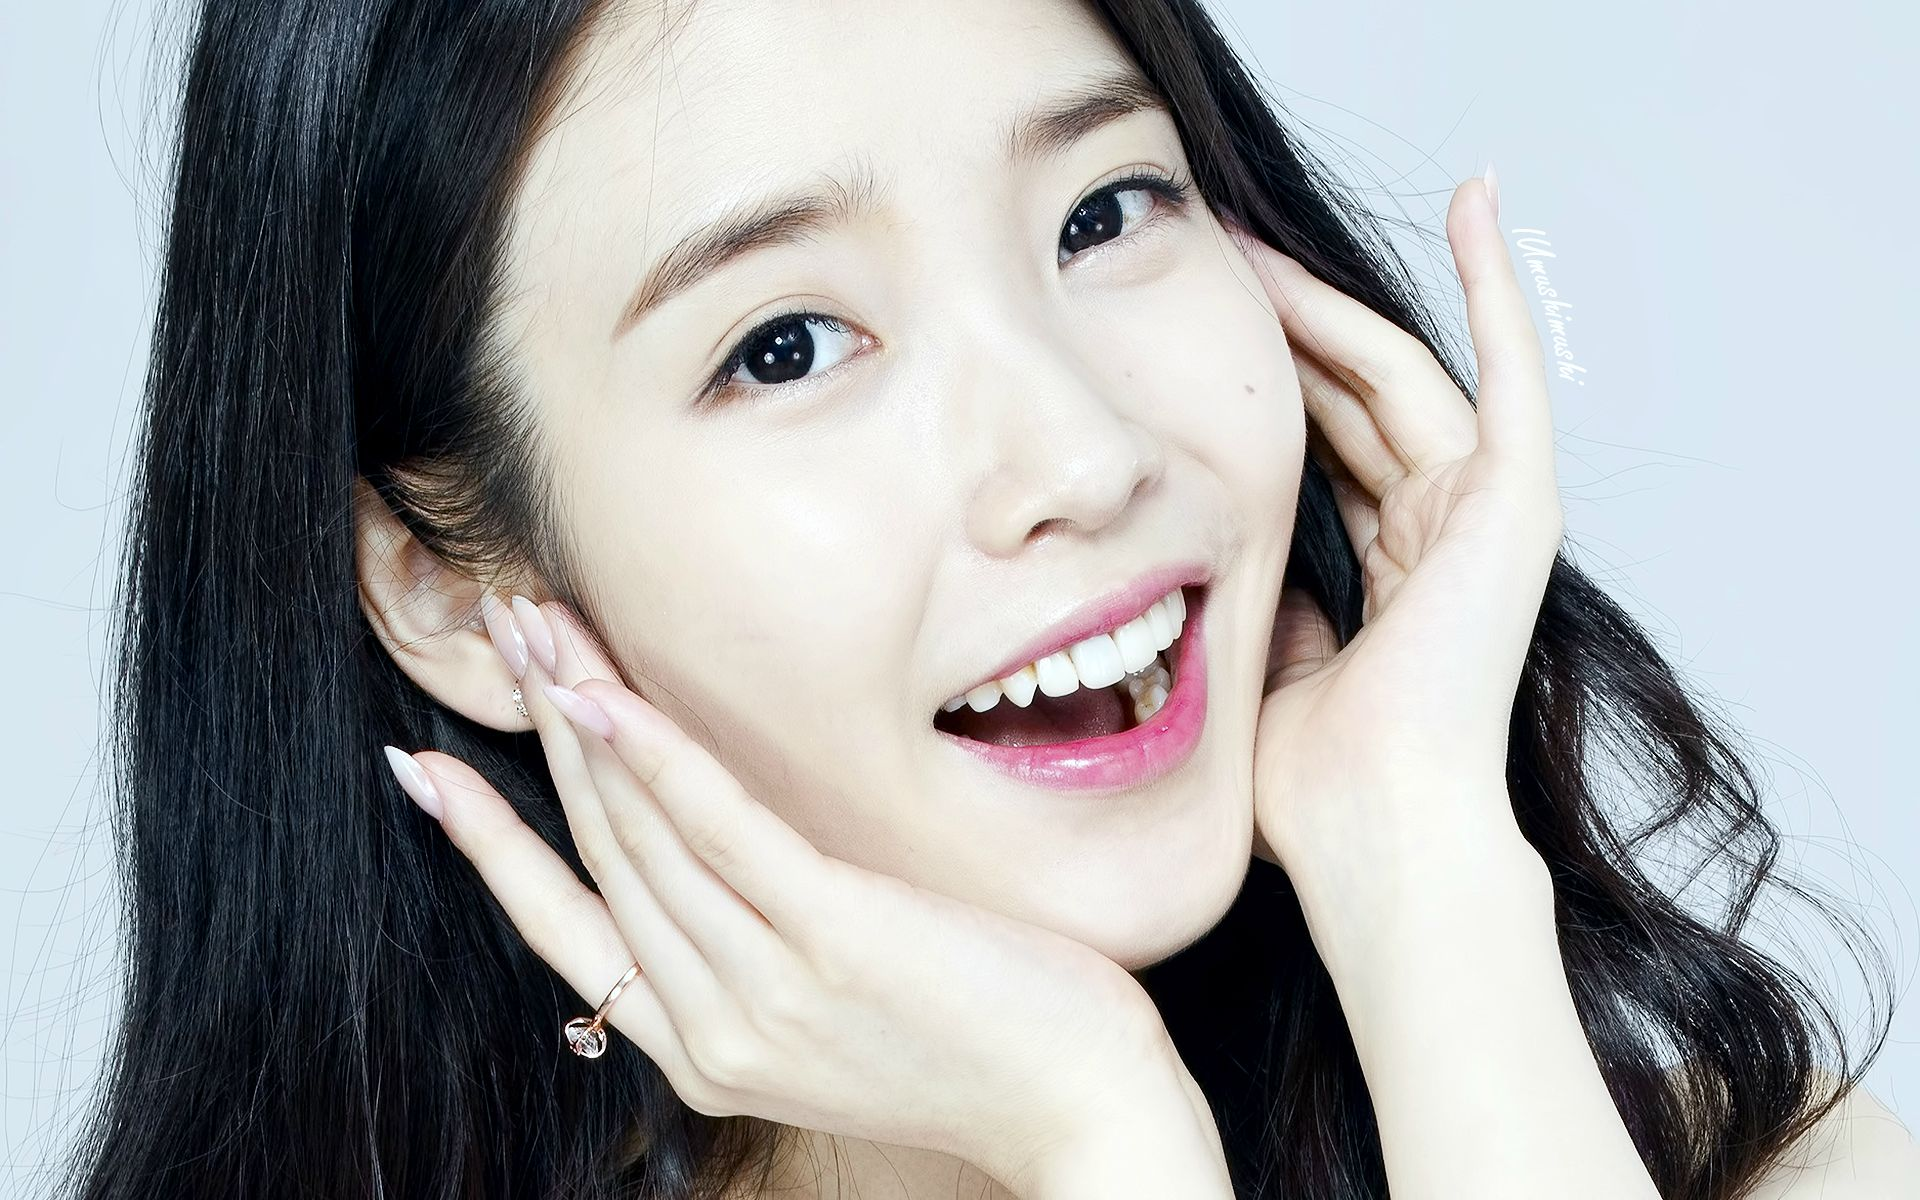 iu images iu 39 s wallpaper 1920x1200 hd wallpaper and